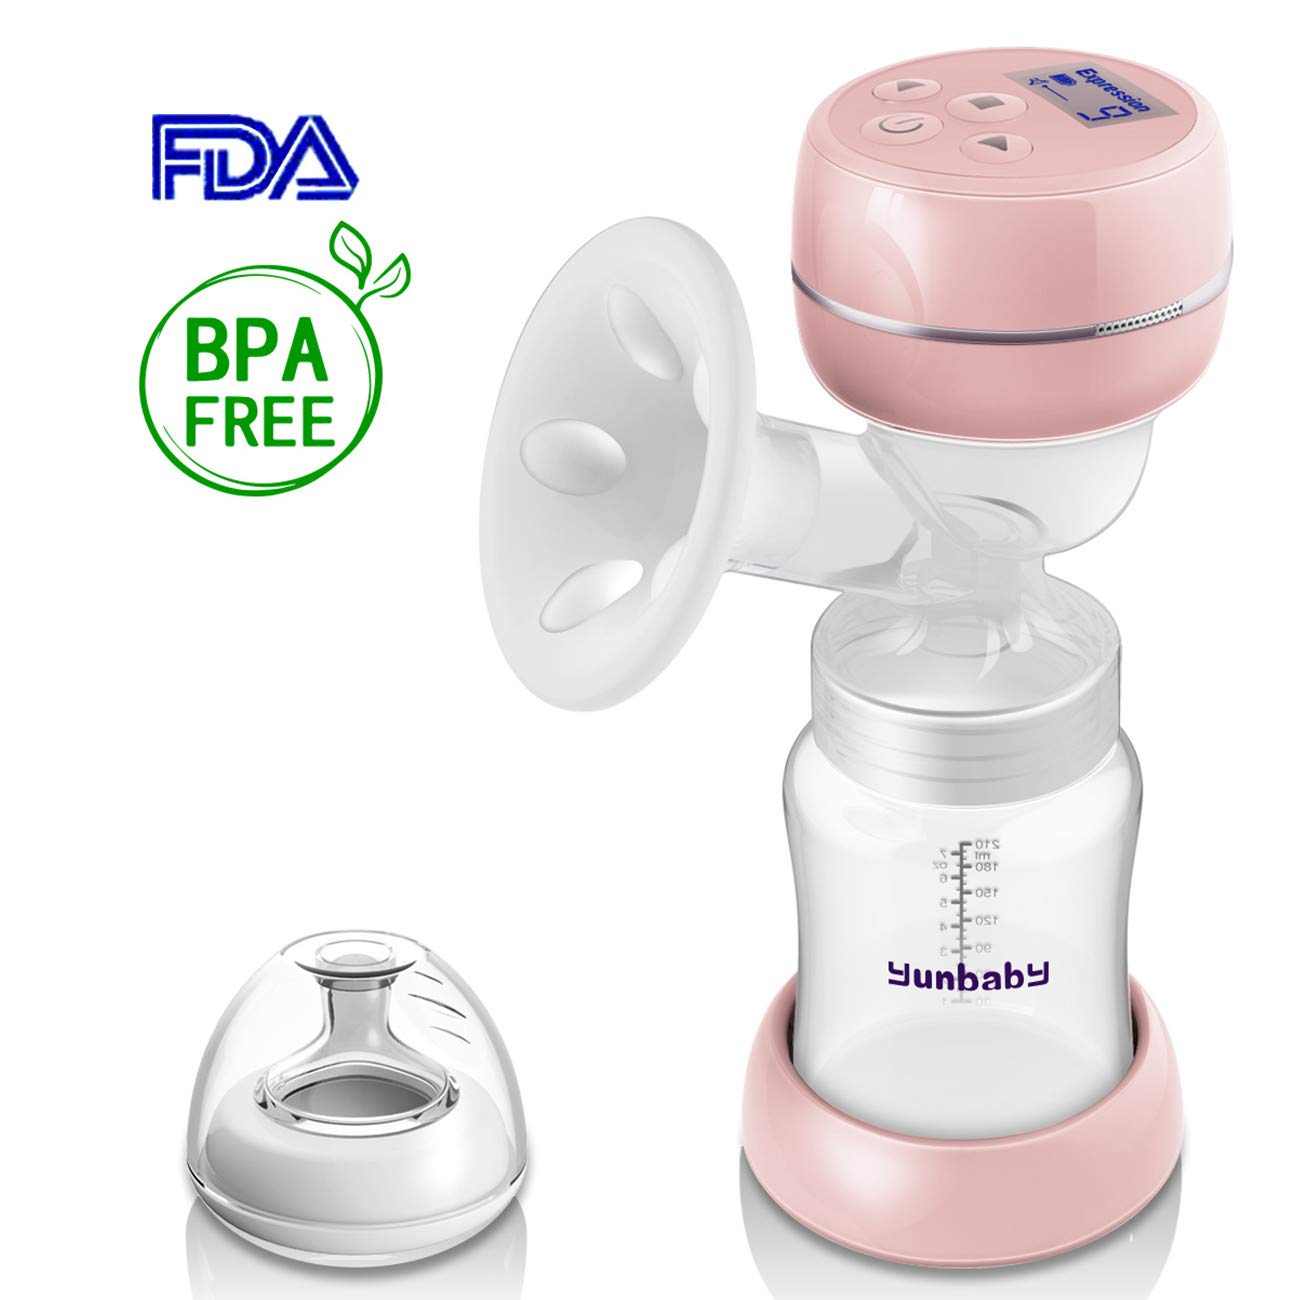 Electric Breast Pump Portable Single Small Milk Pump Best for Travel Office Breastfeeding, USB Rechargeable with Massage Adjustable Suction, BPA Free - Pink